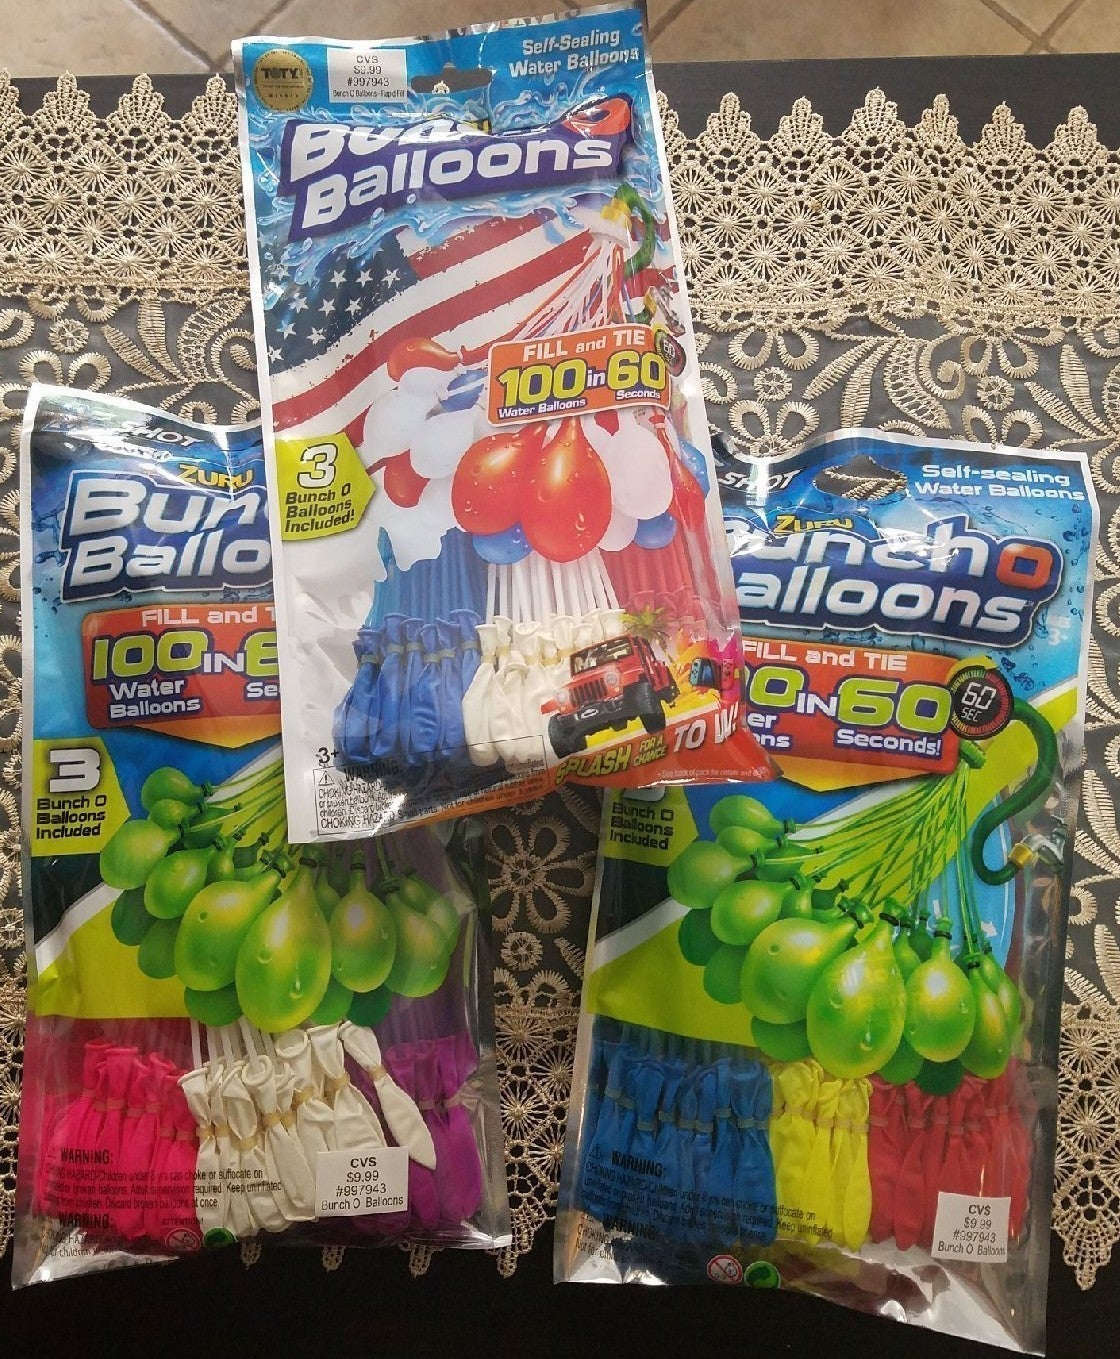 4th of July Bunch O Balloons Water Ballo